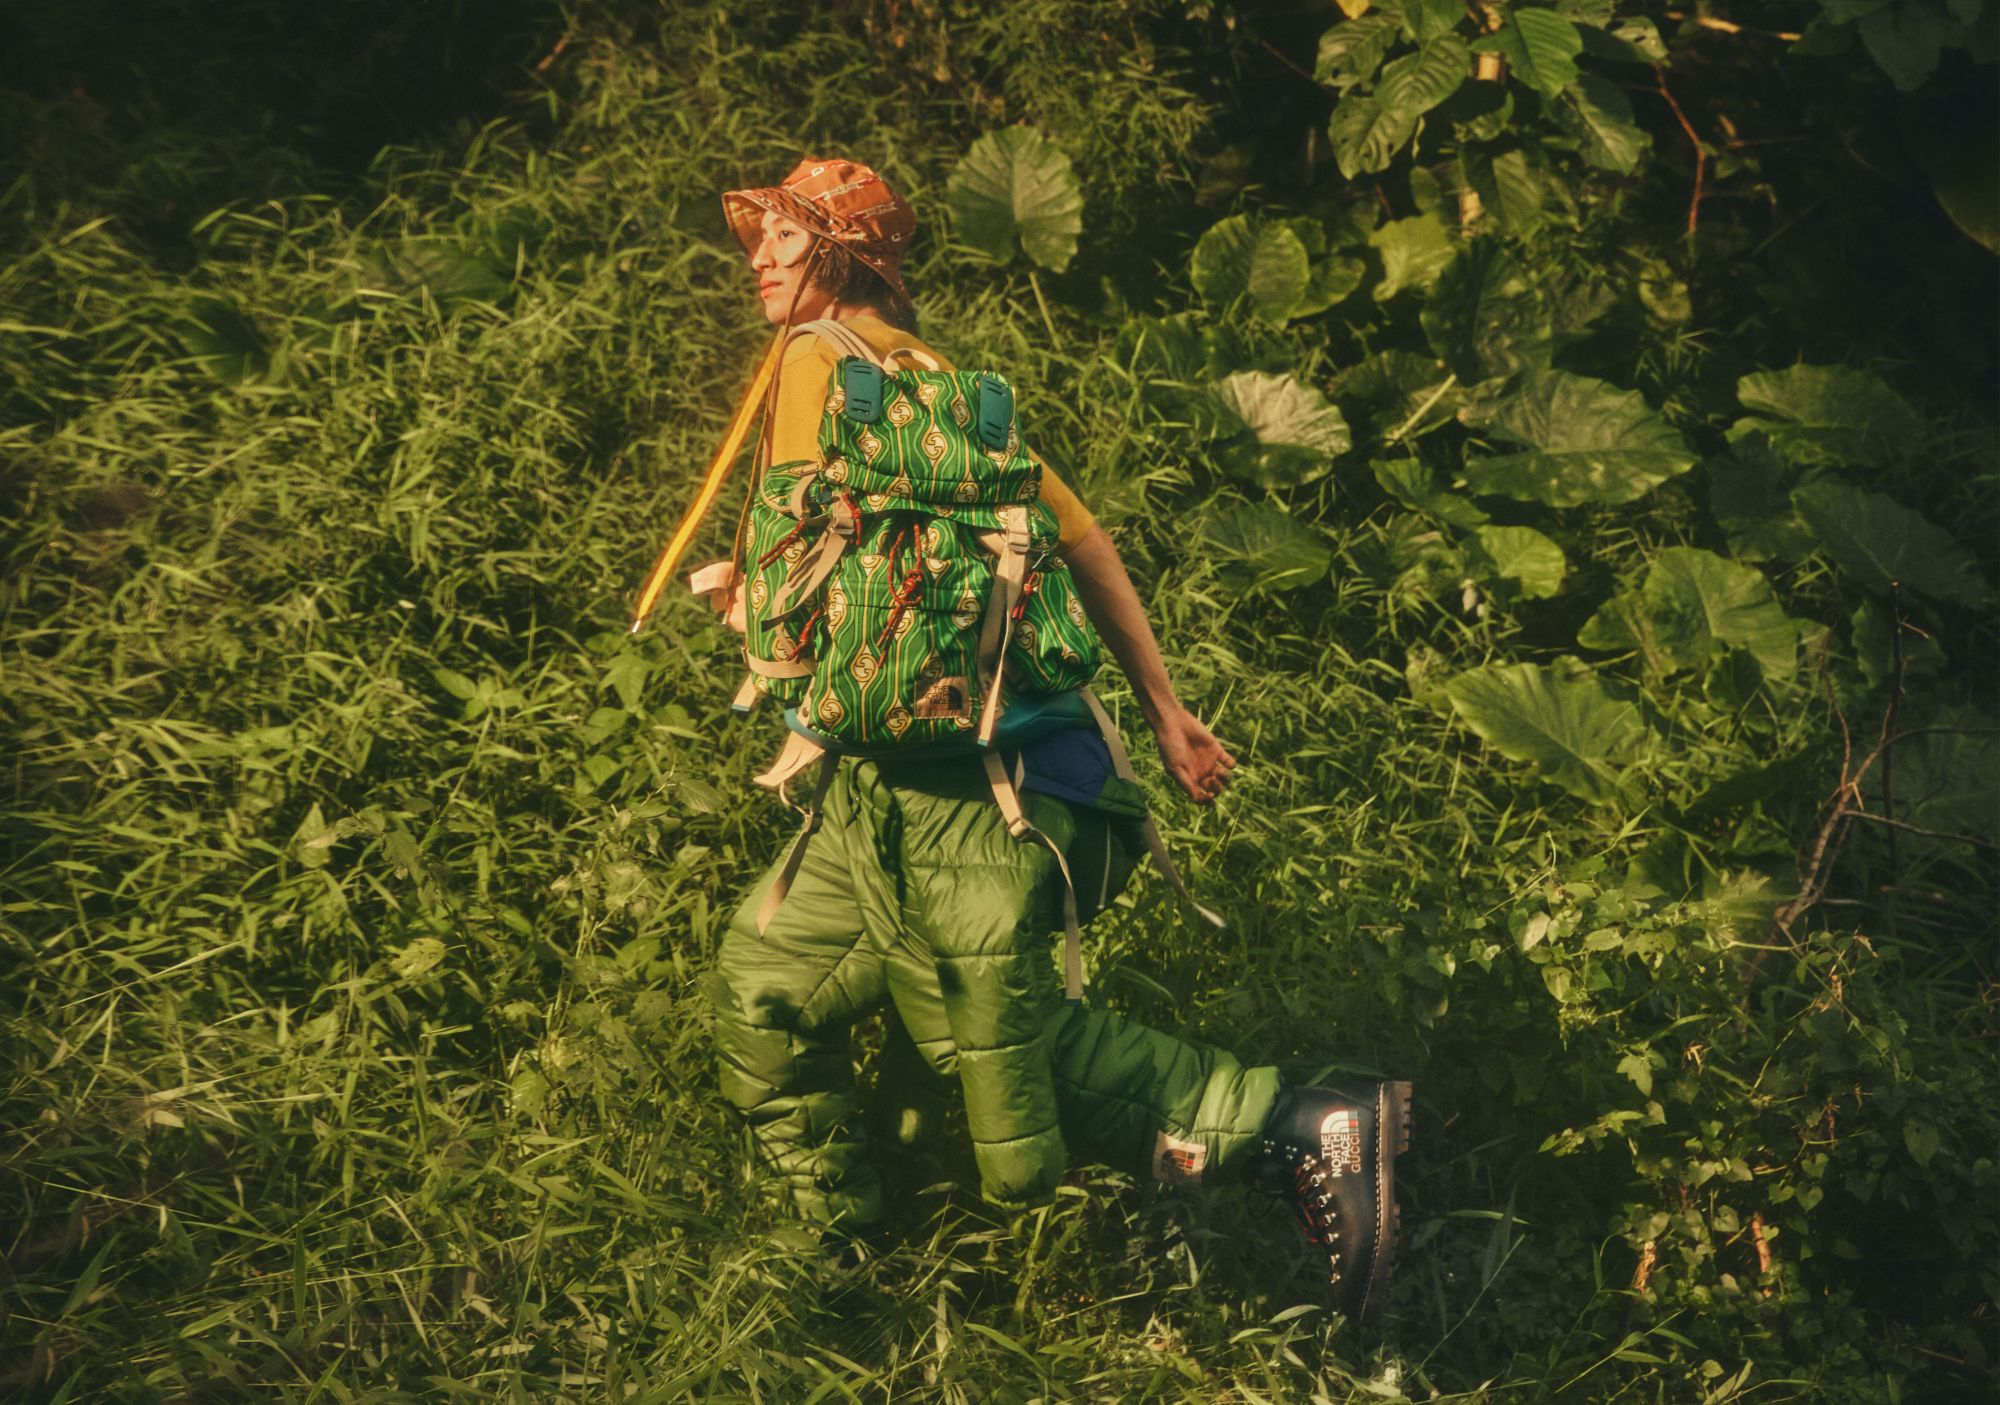 The North Face x Gucci: Brandon Leo Celebrates the Spirit of Exploration